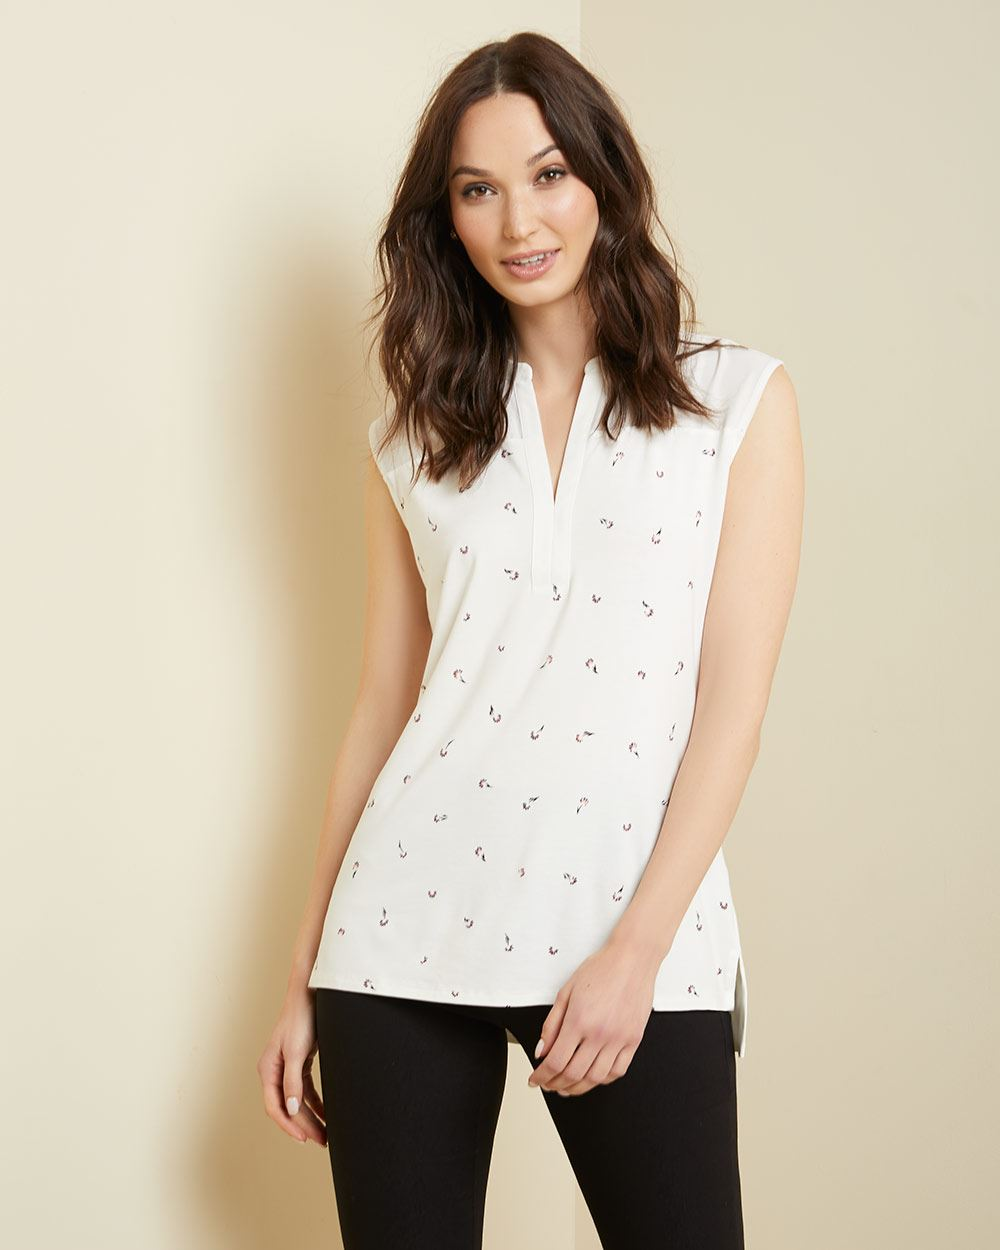 C&G Sleeveless henley mixed media tunic t-shirt